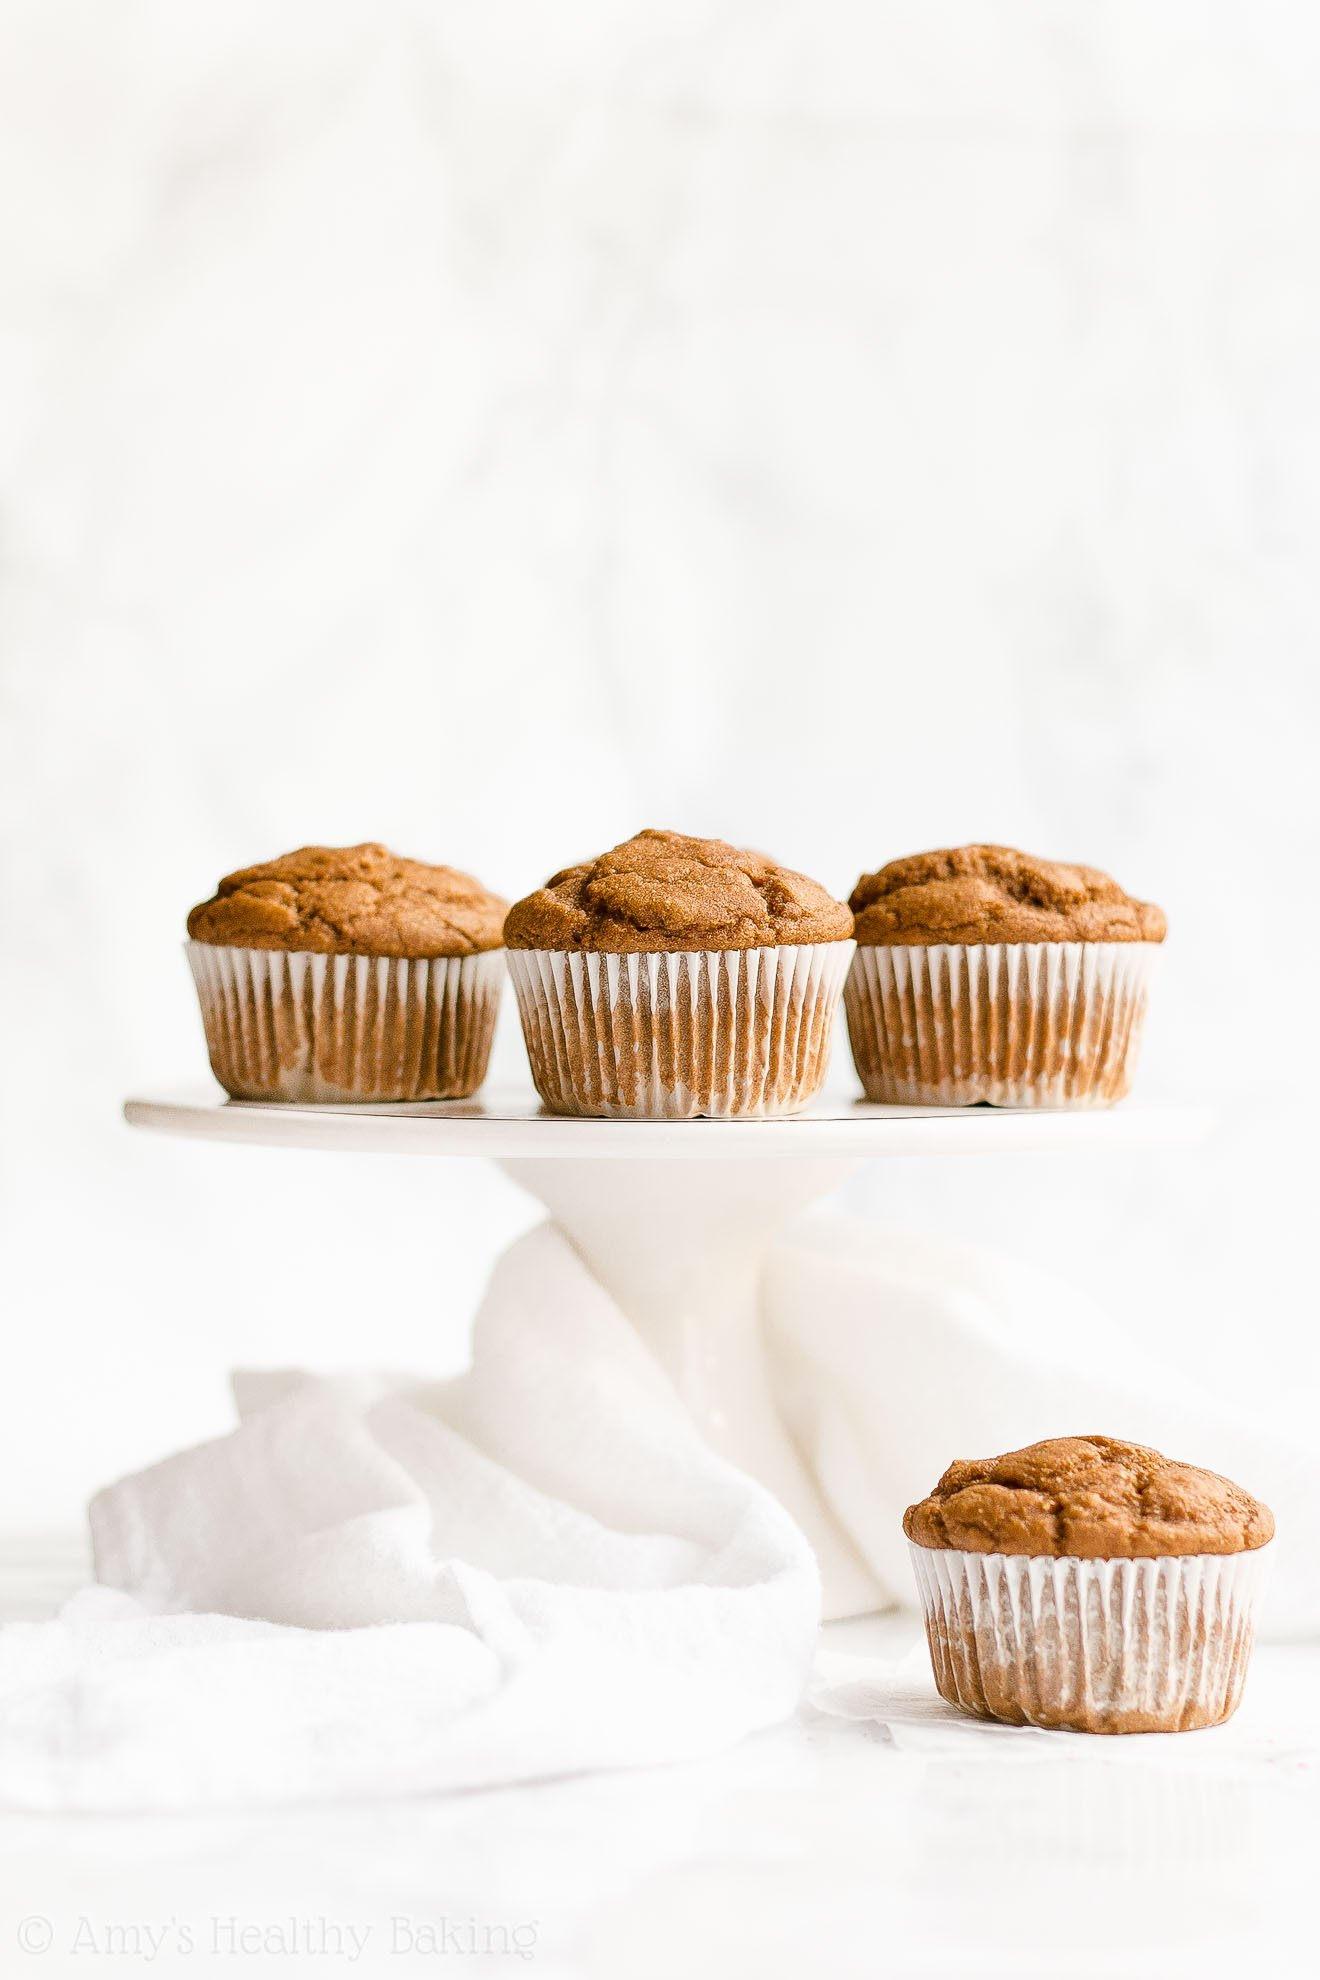 Easy Healthy Low Fat Low Sugar One-Bowl Gingerbread Muffins